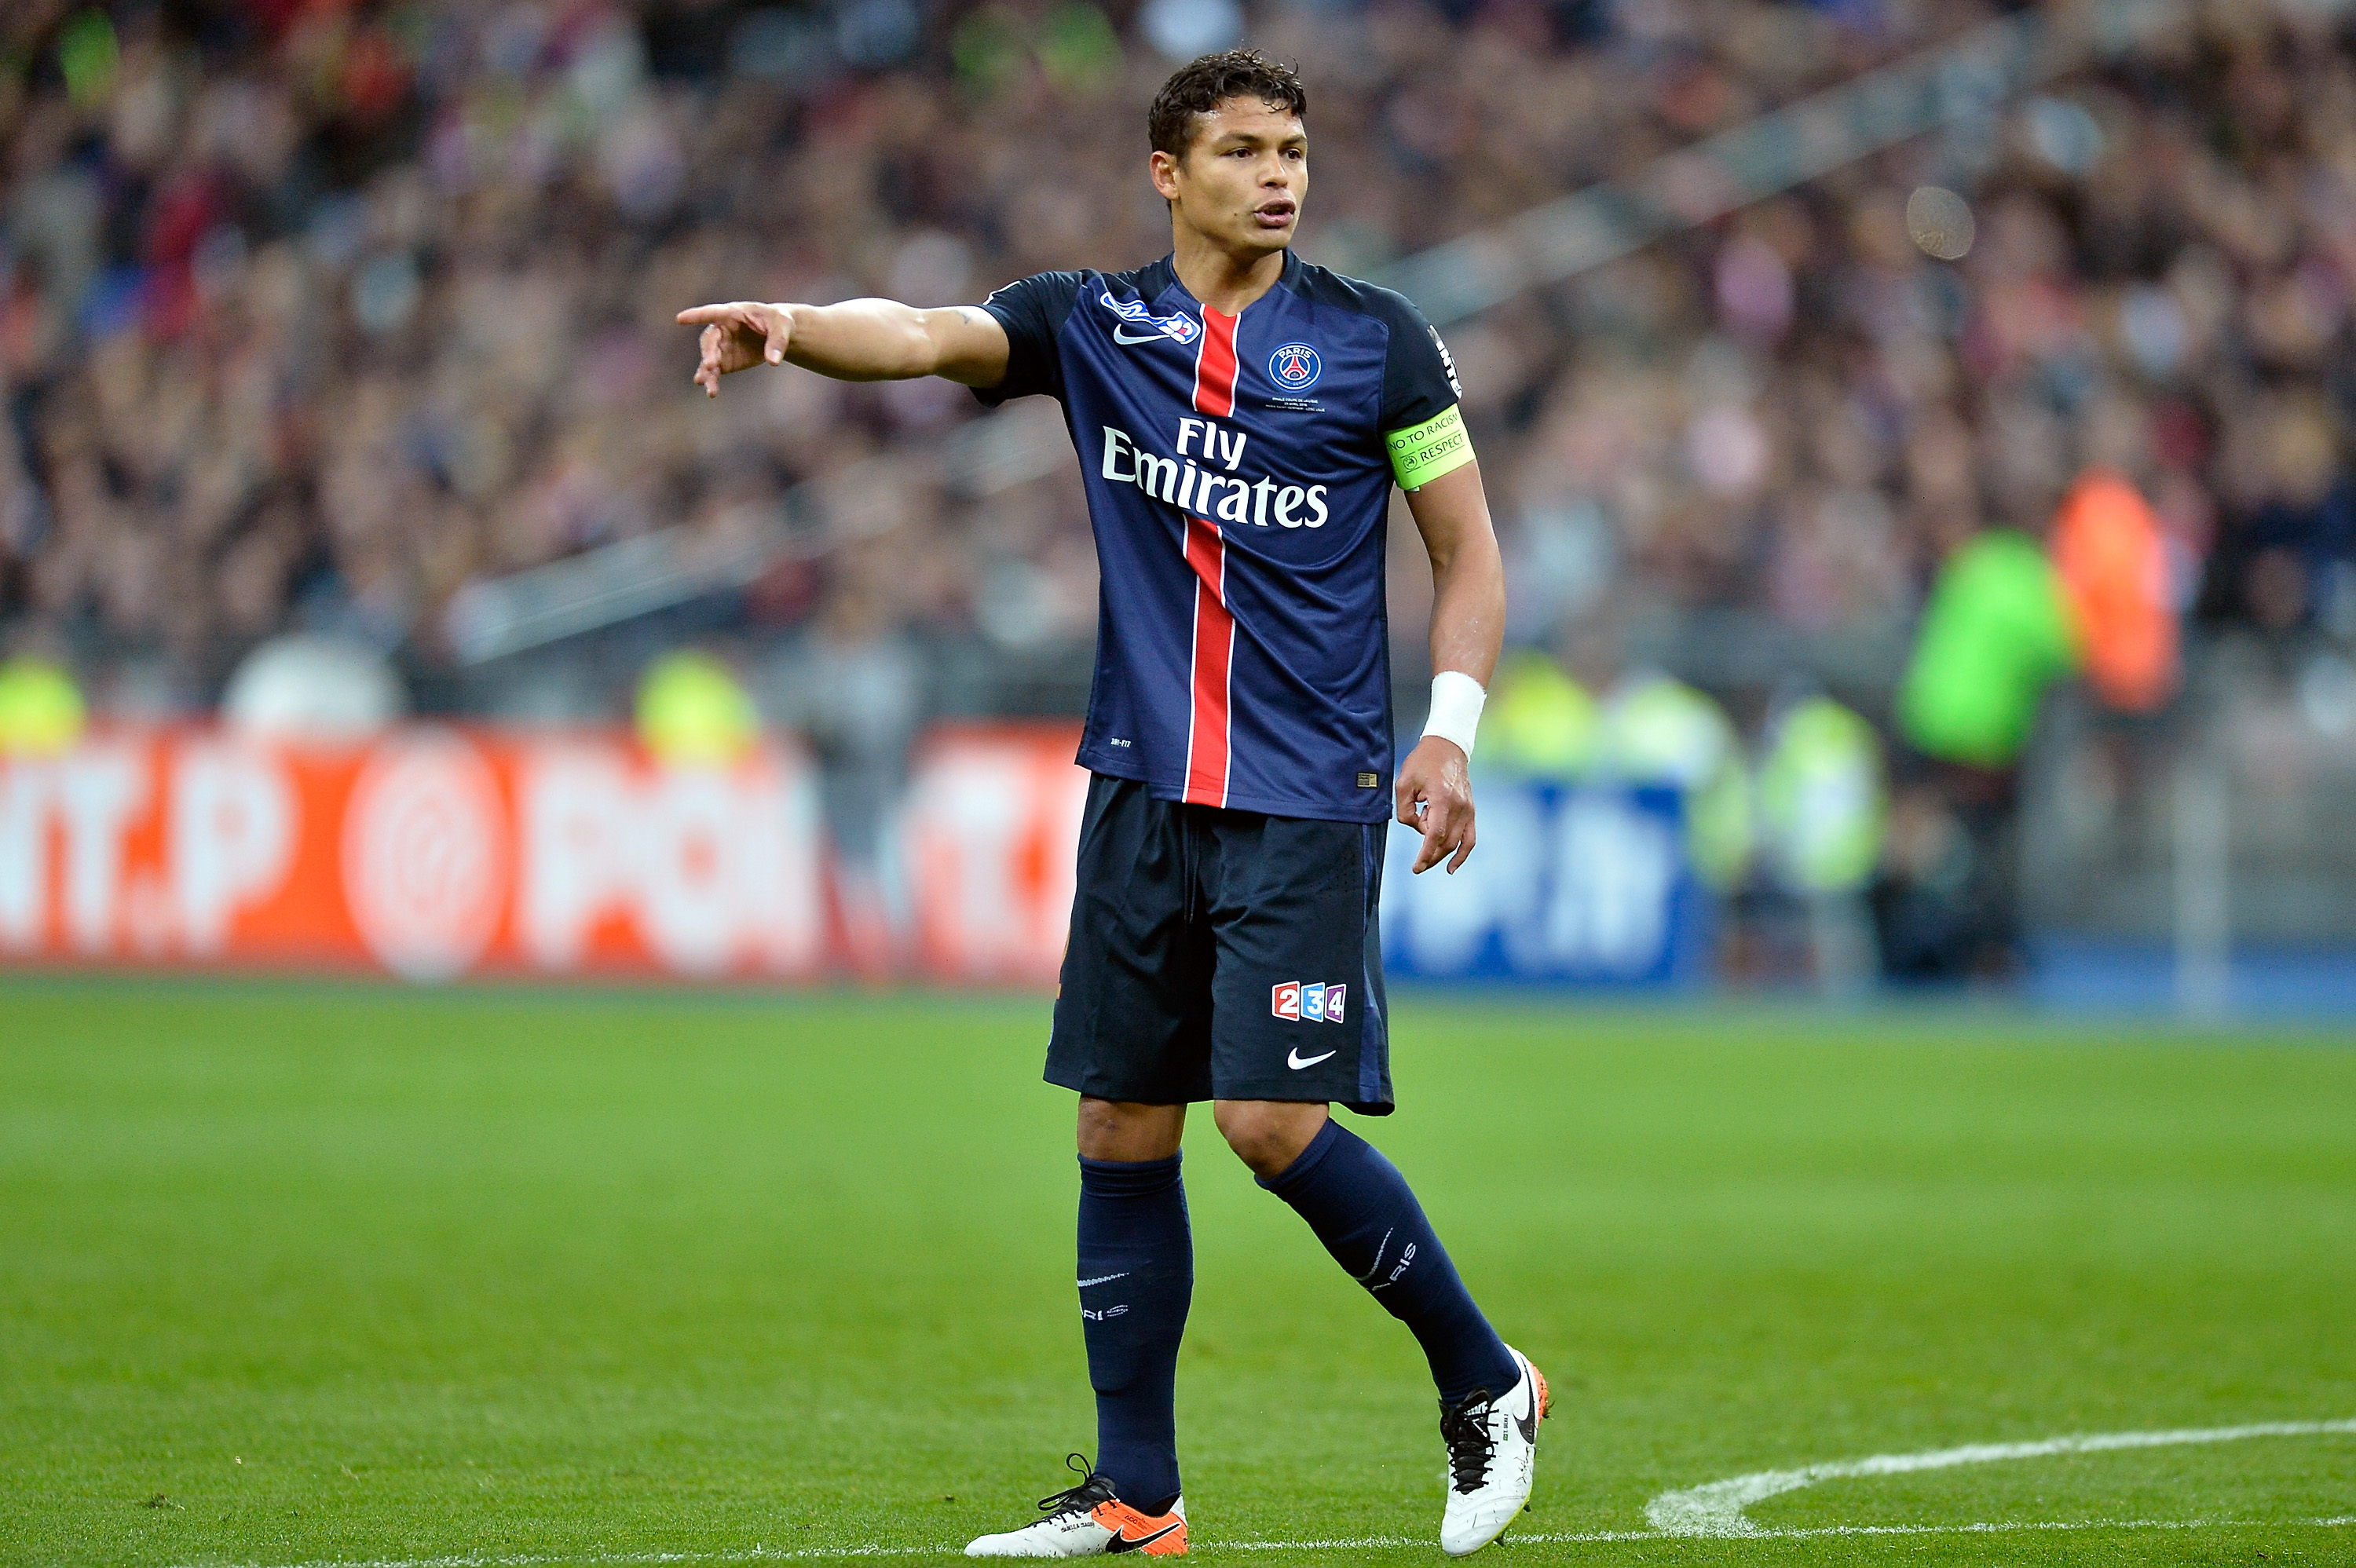 Arsenal Vs. PSG: Laurent Koscielny And Thiago Silva Immeasurably Important